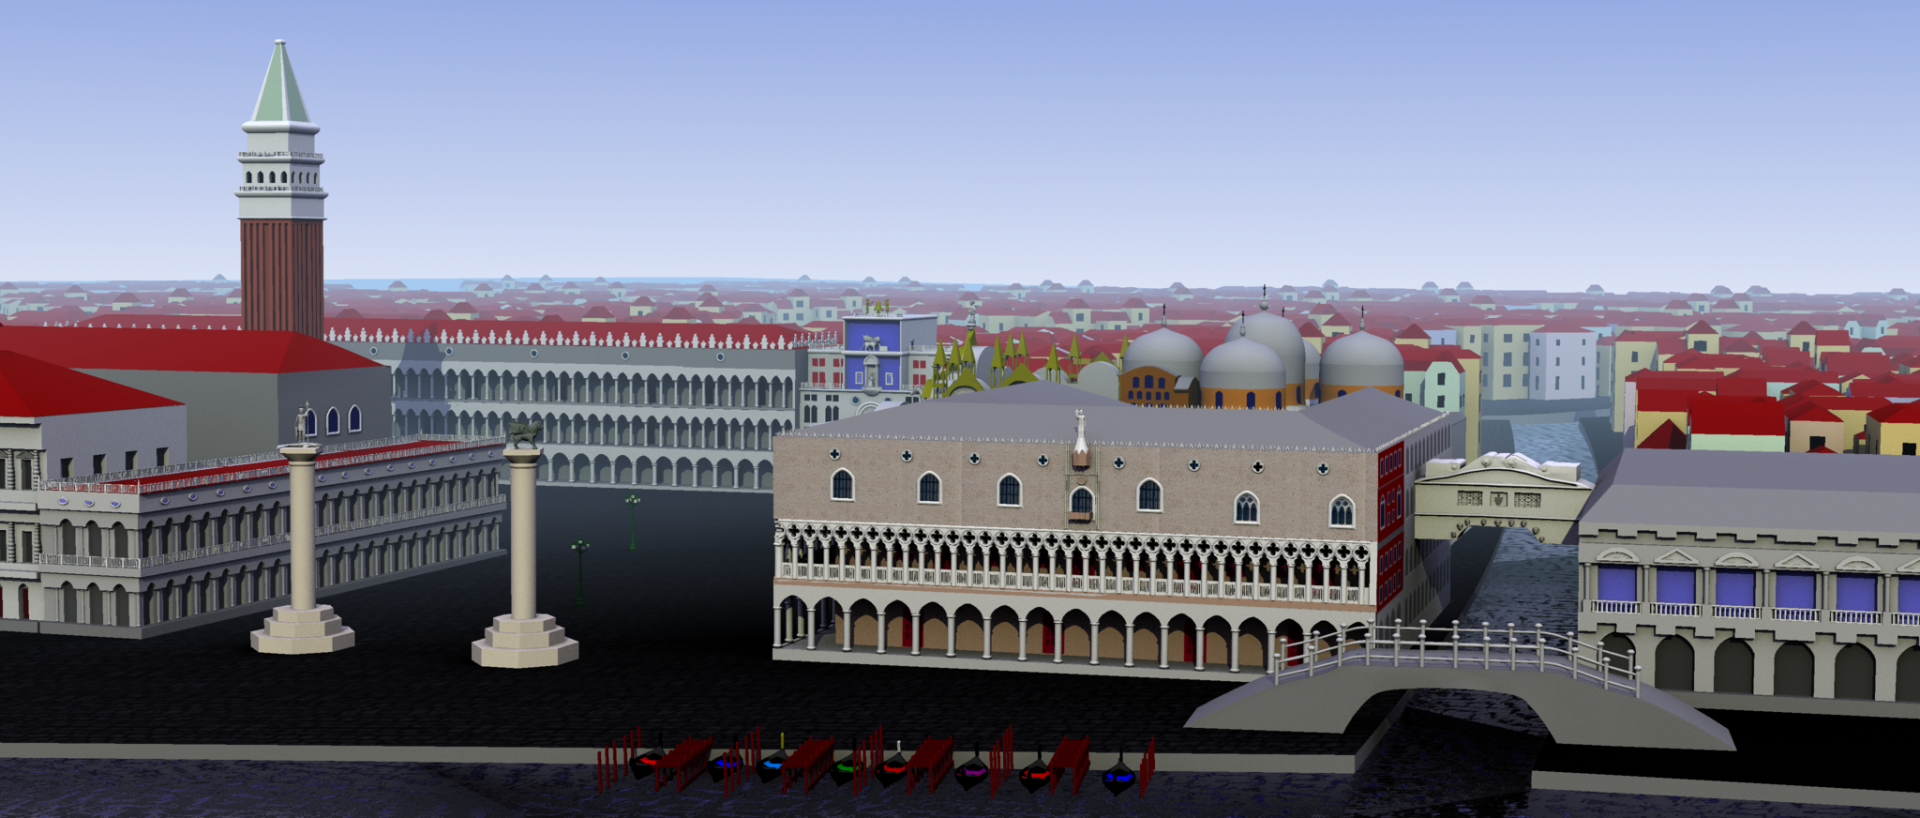 Venice in progress AOla  fog water experiment2 cobblestone0.png